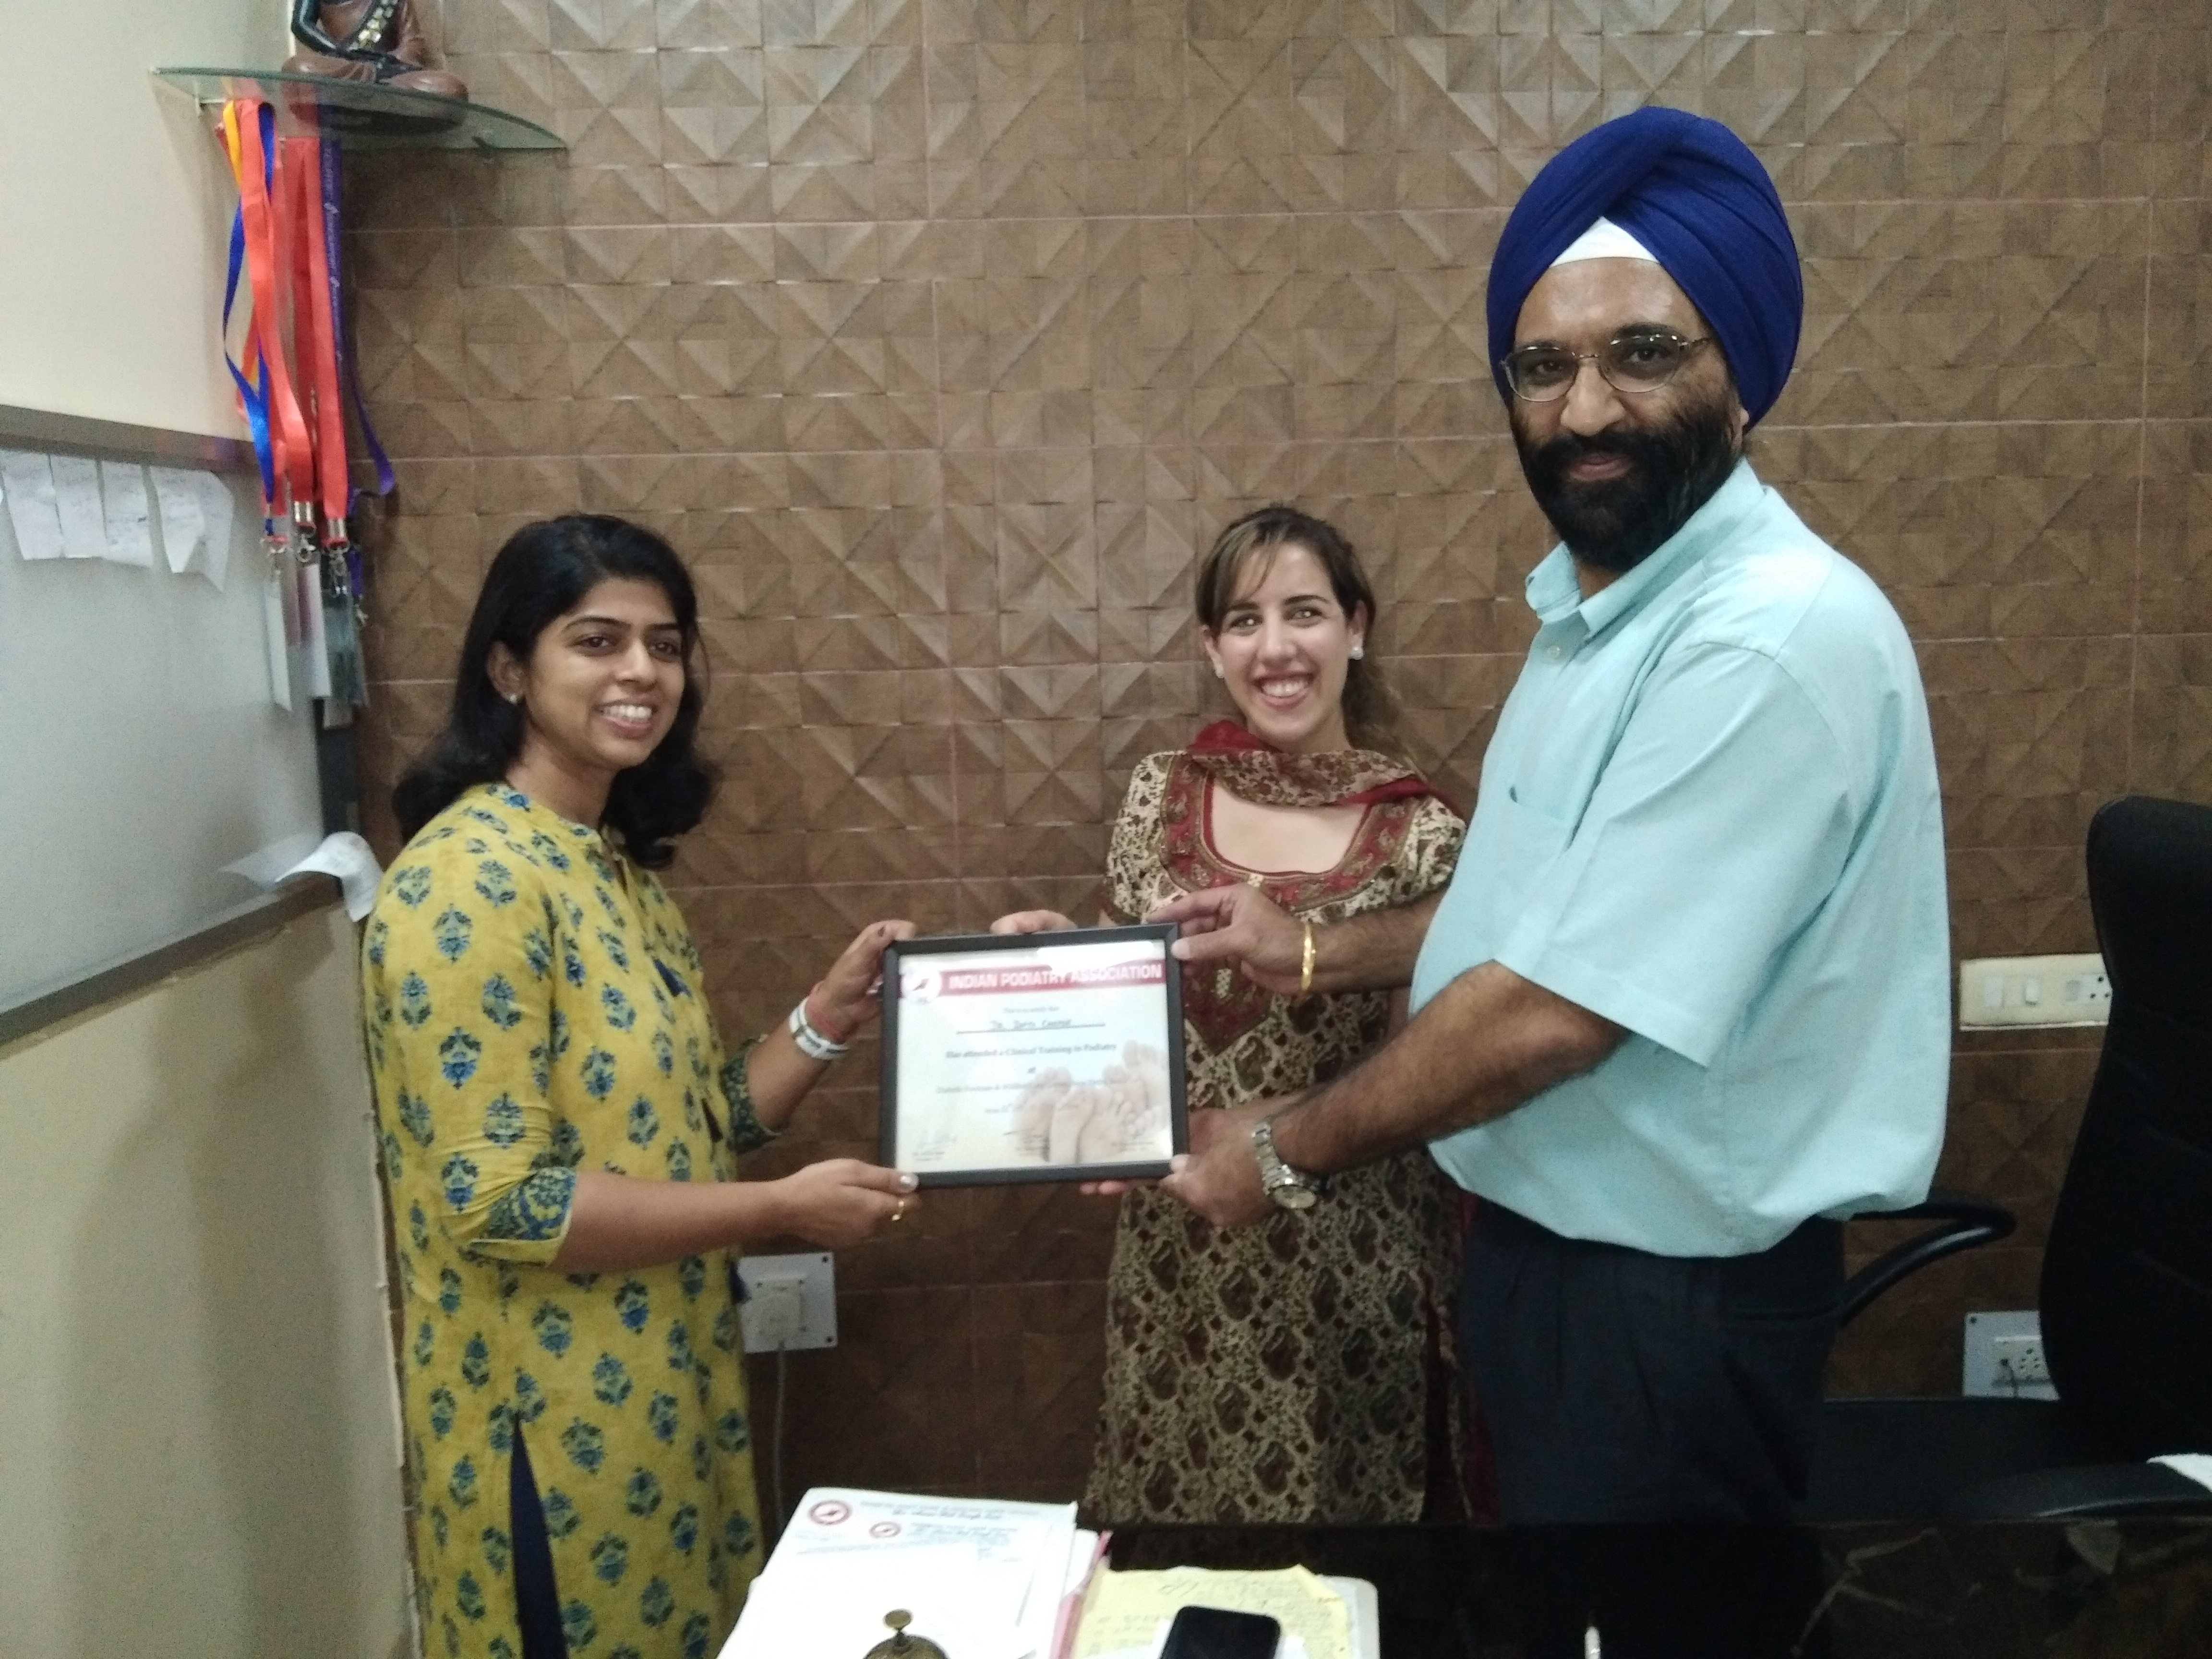 Diabetes Educators Training in Podiatry at Diabetic Foot Care Center in  New Delhi  India 26th Sept to 3rd Oct 2018